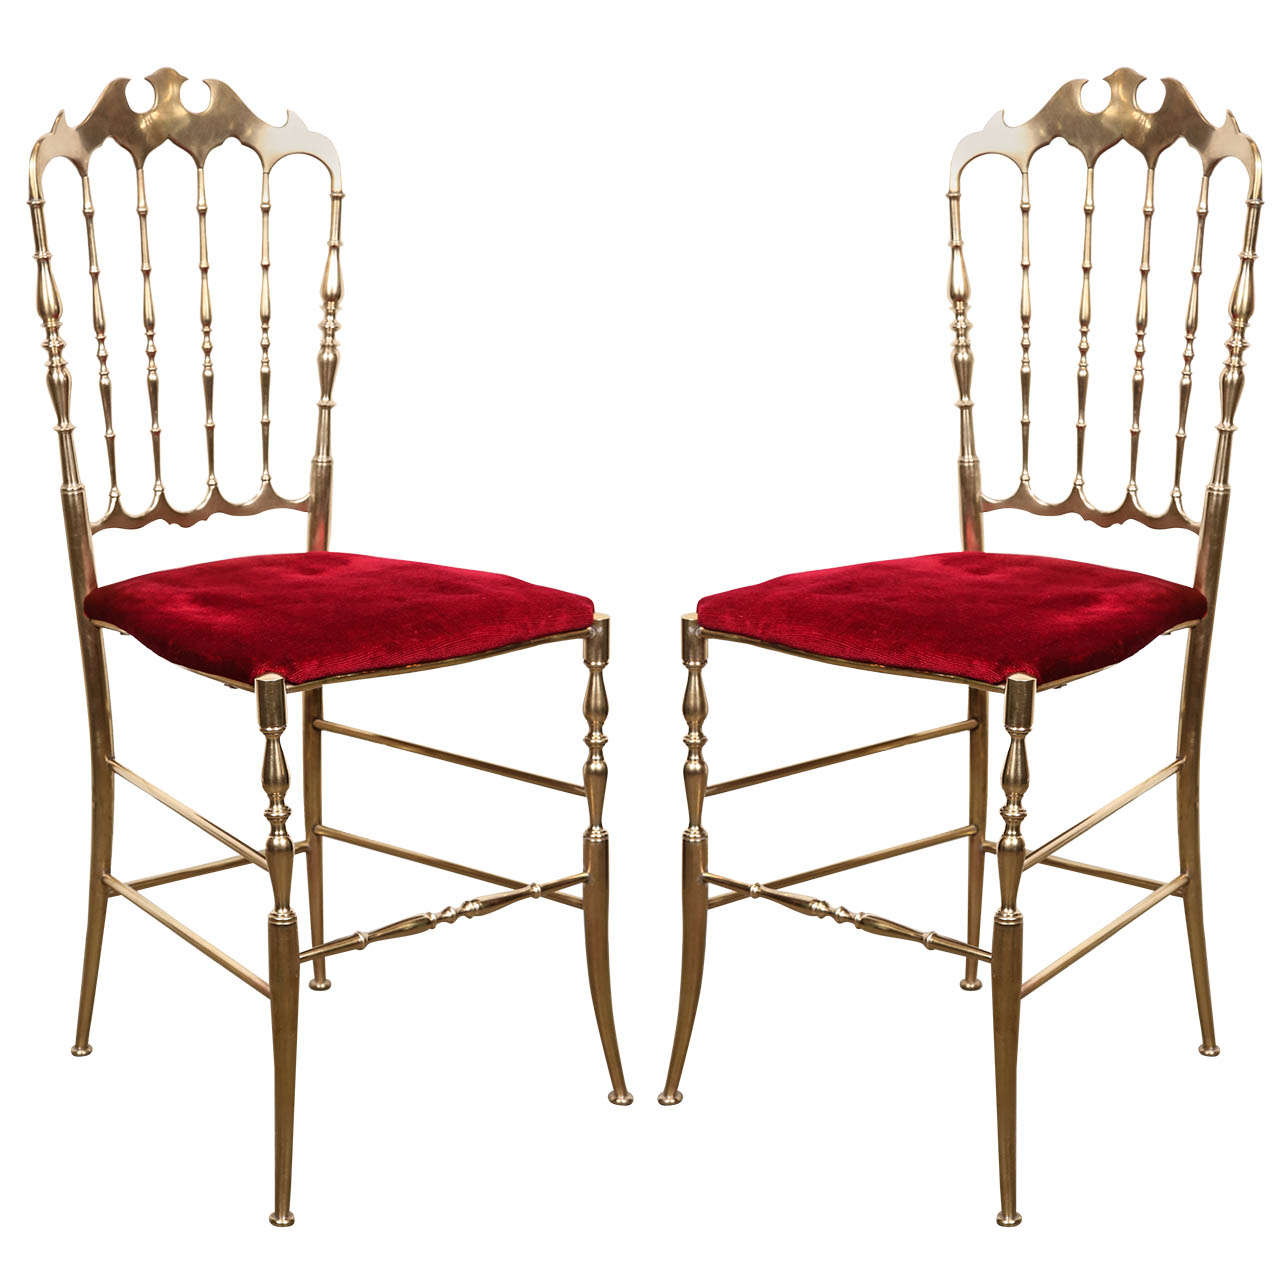 Chiavari Chairs Polished Brass Chiavari Chairs With Red Velvet Italy For